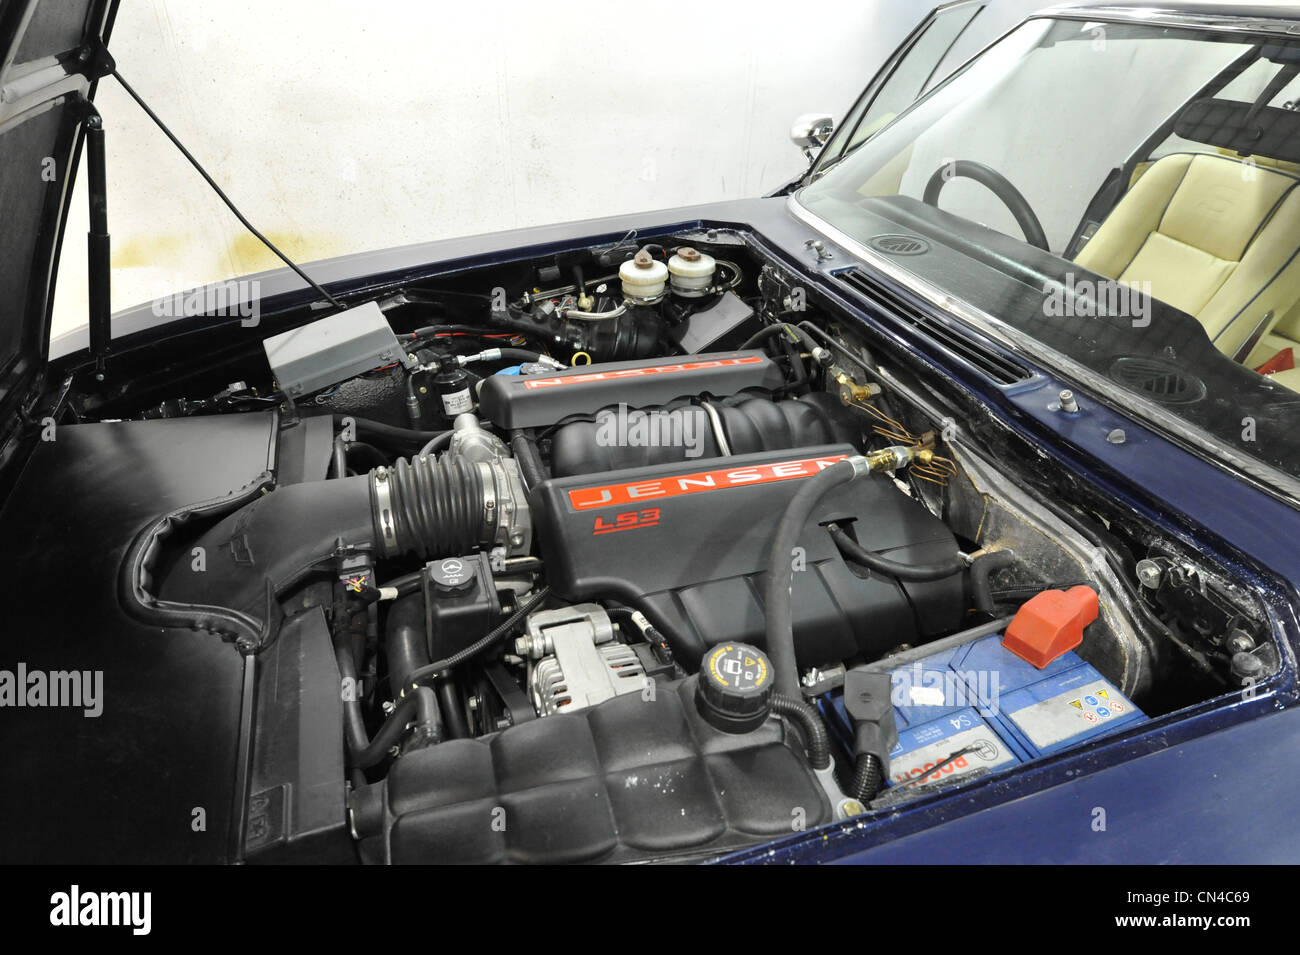 Engine Induction Stock Photos & Engine Induction Stock